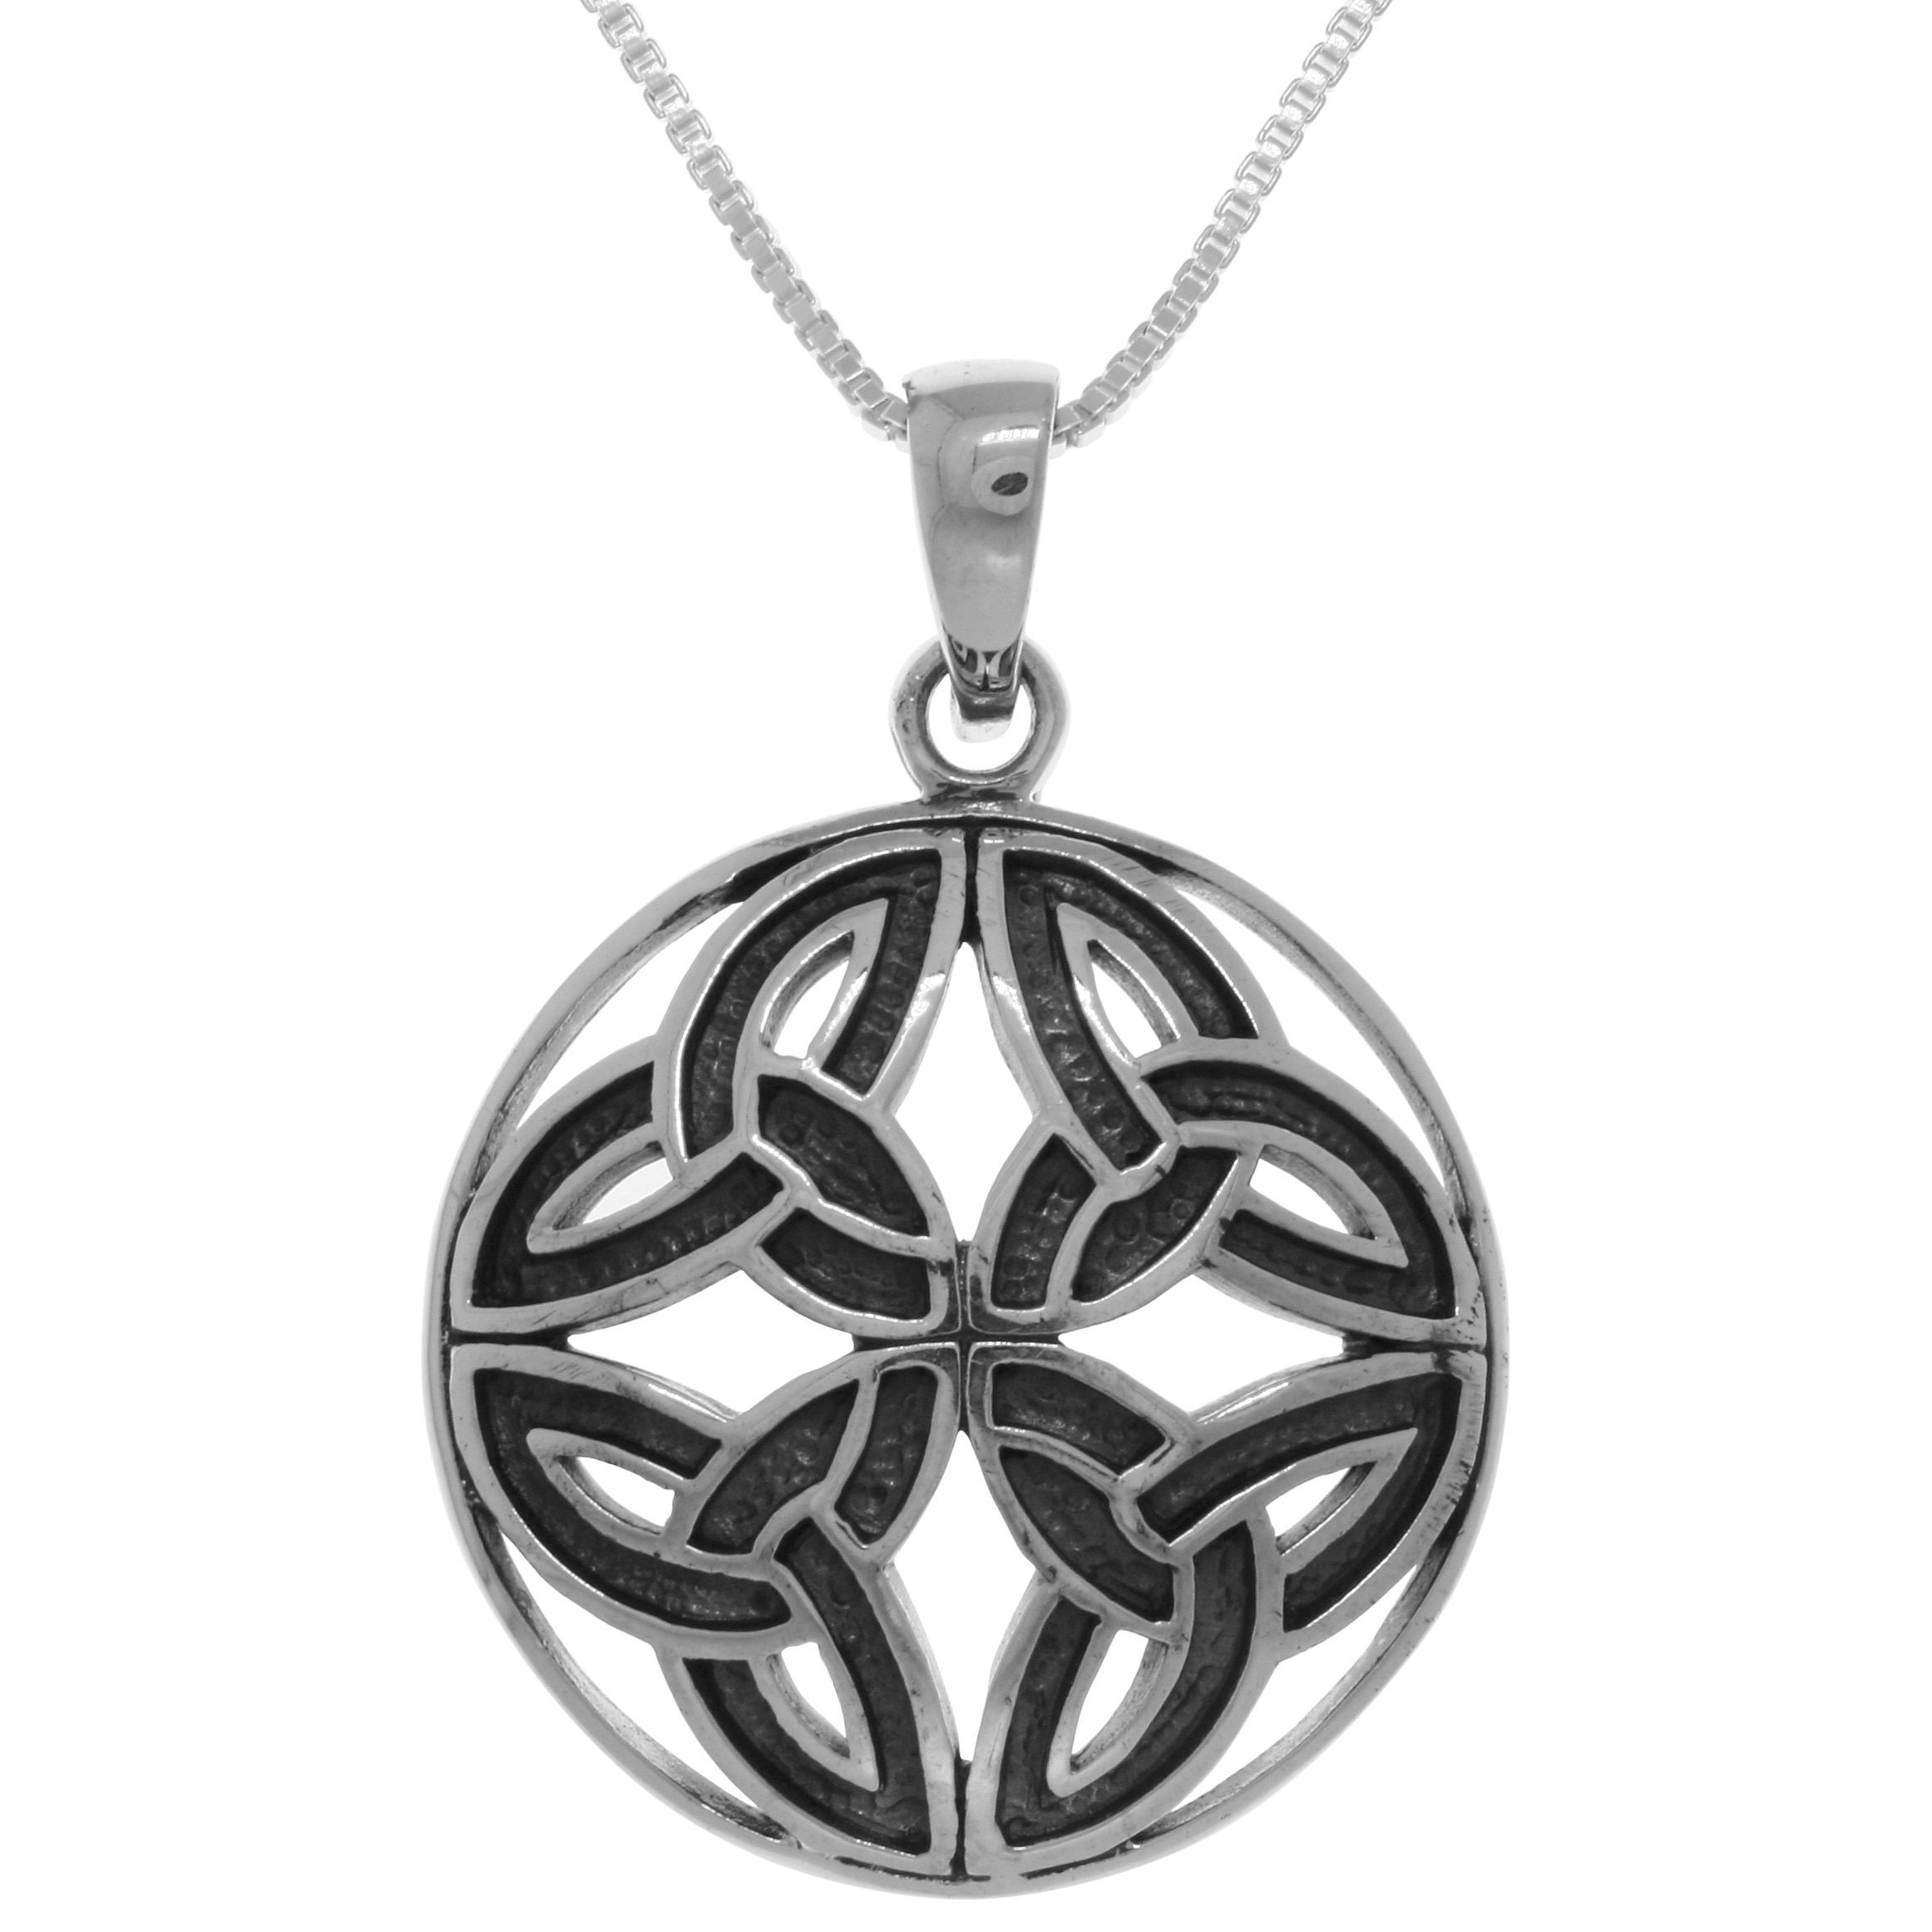 dsc pendant cross celtic genesis metalsmiths walker products in necklace sterling silver